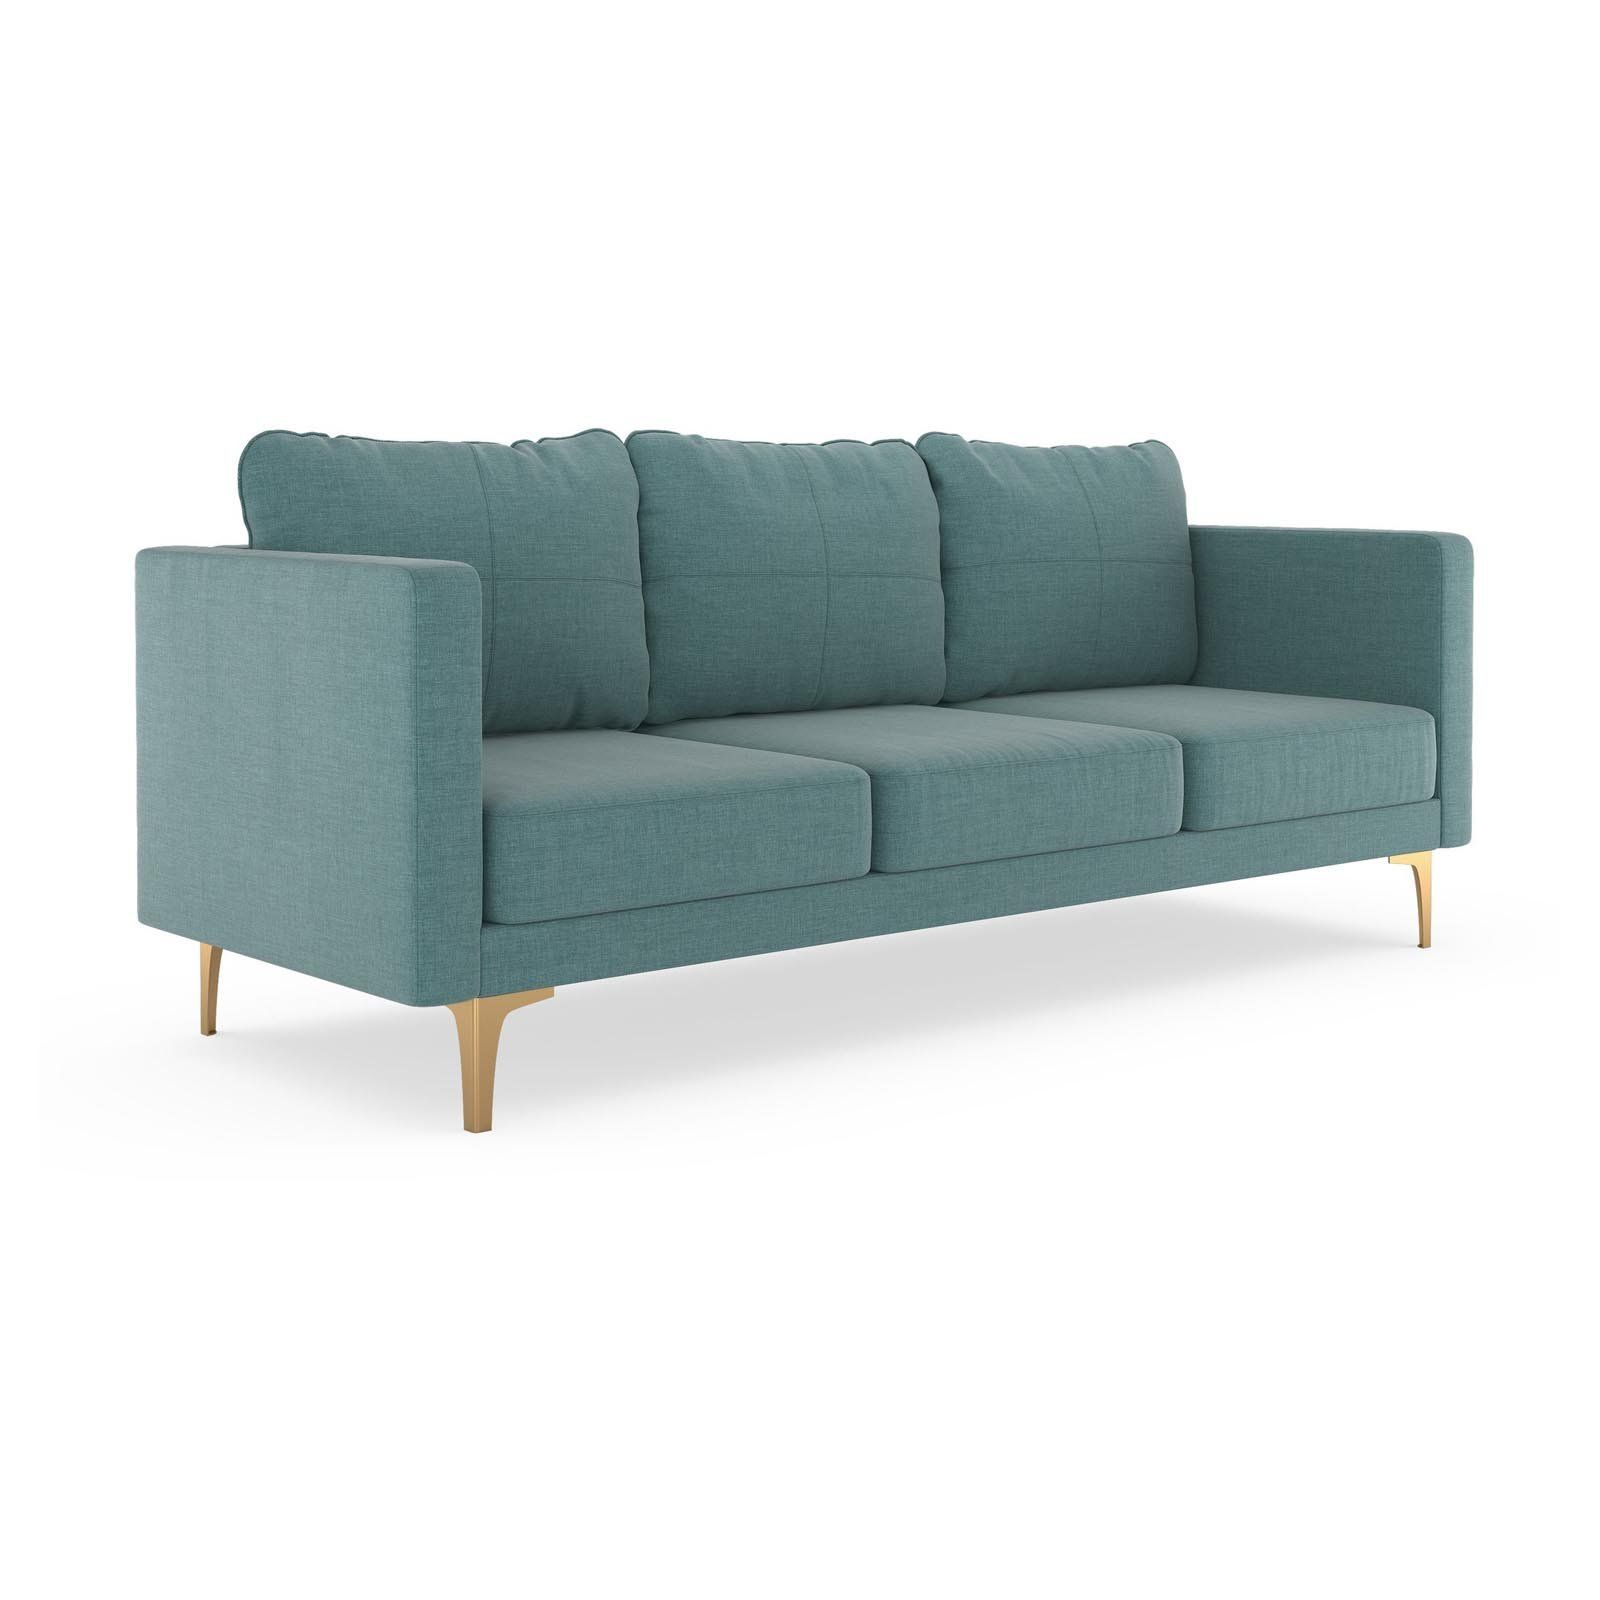 Fine Nyekoncept Maddy Linen Weave Sofa Stone Blue Products In Gamerscity Chair Design For Home Gamerscityorg